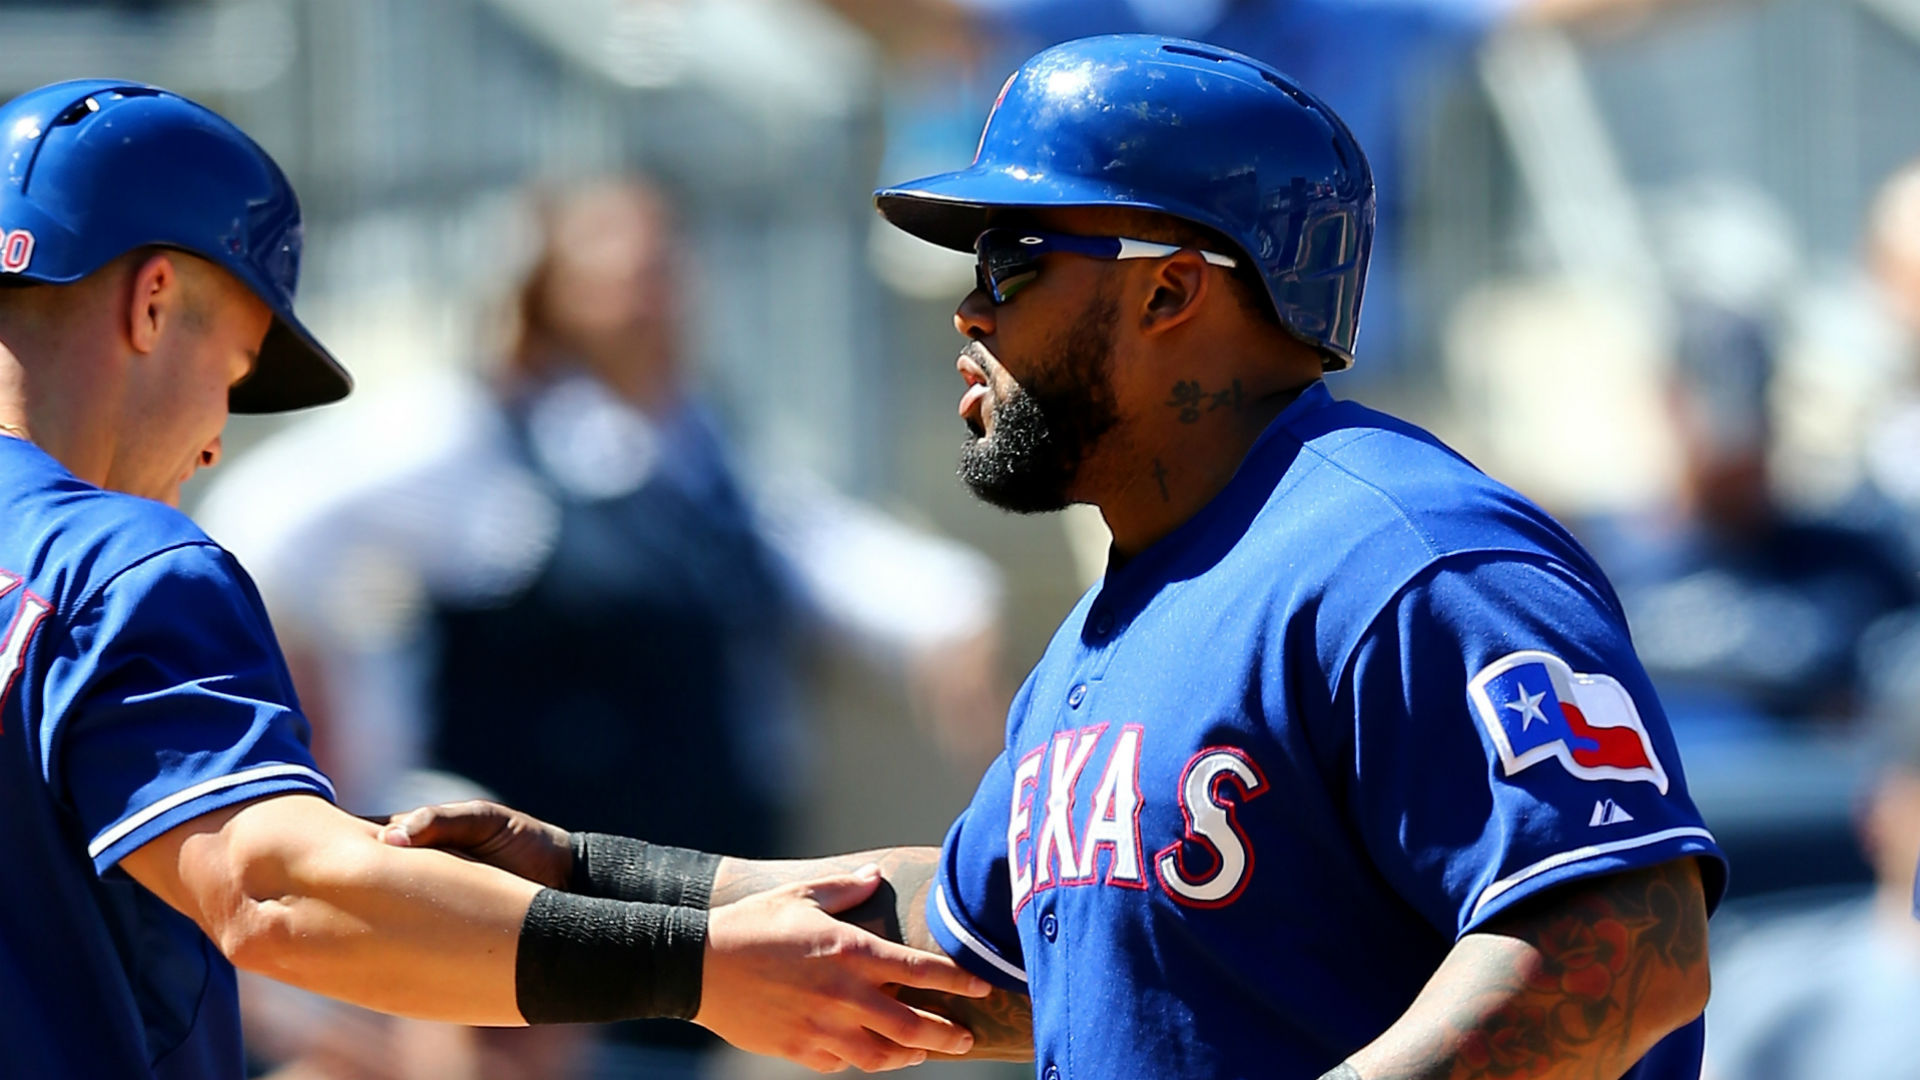 MLB Nightly 9: Prince Fielder leads Rangers to 15-run outburst against Yankees